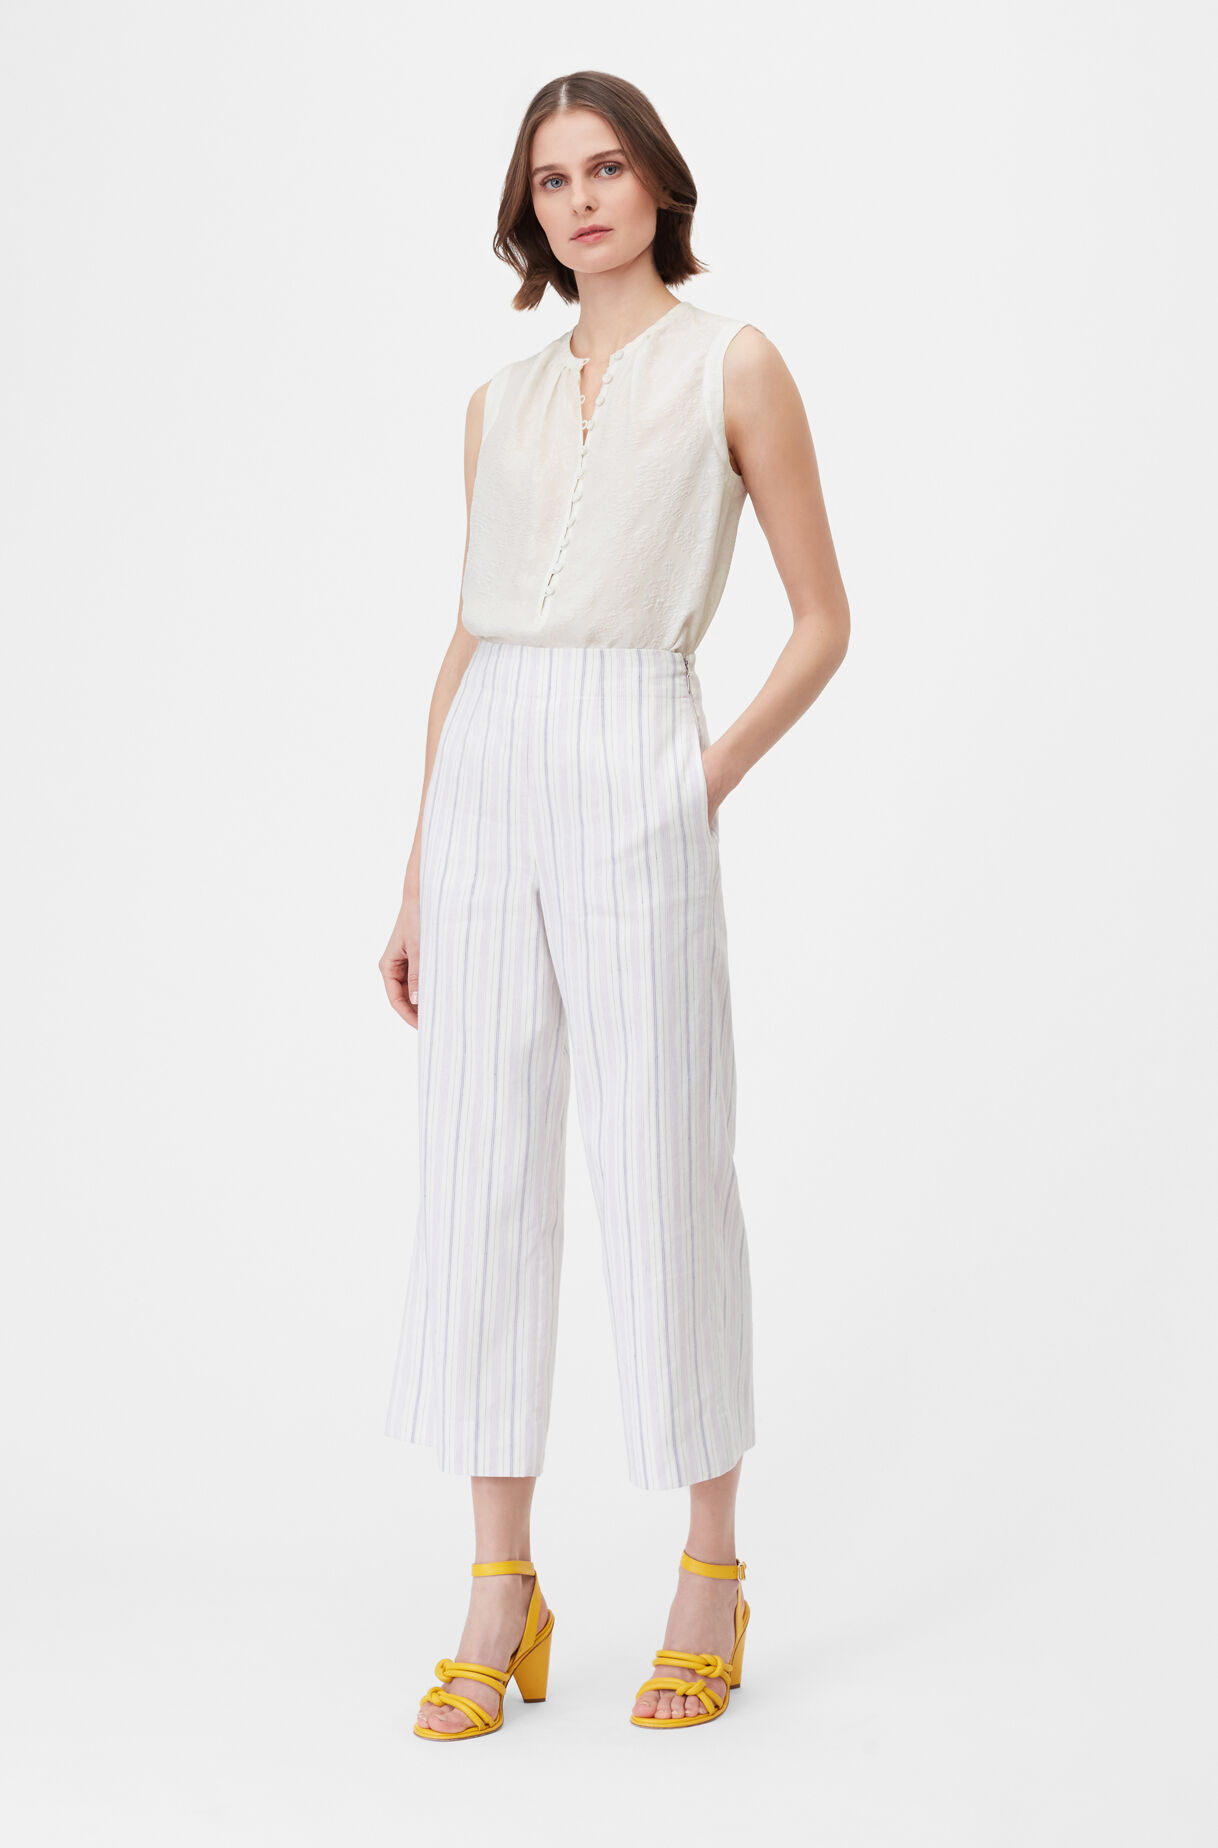 Tailored Stripe Suiting Pant, , large